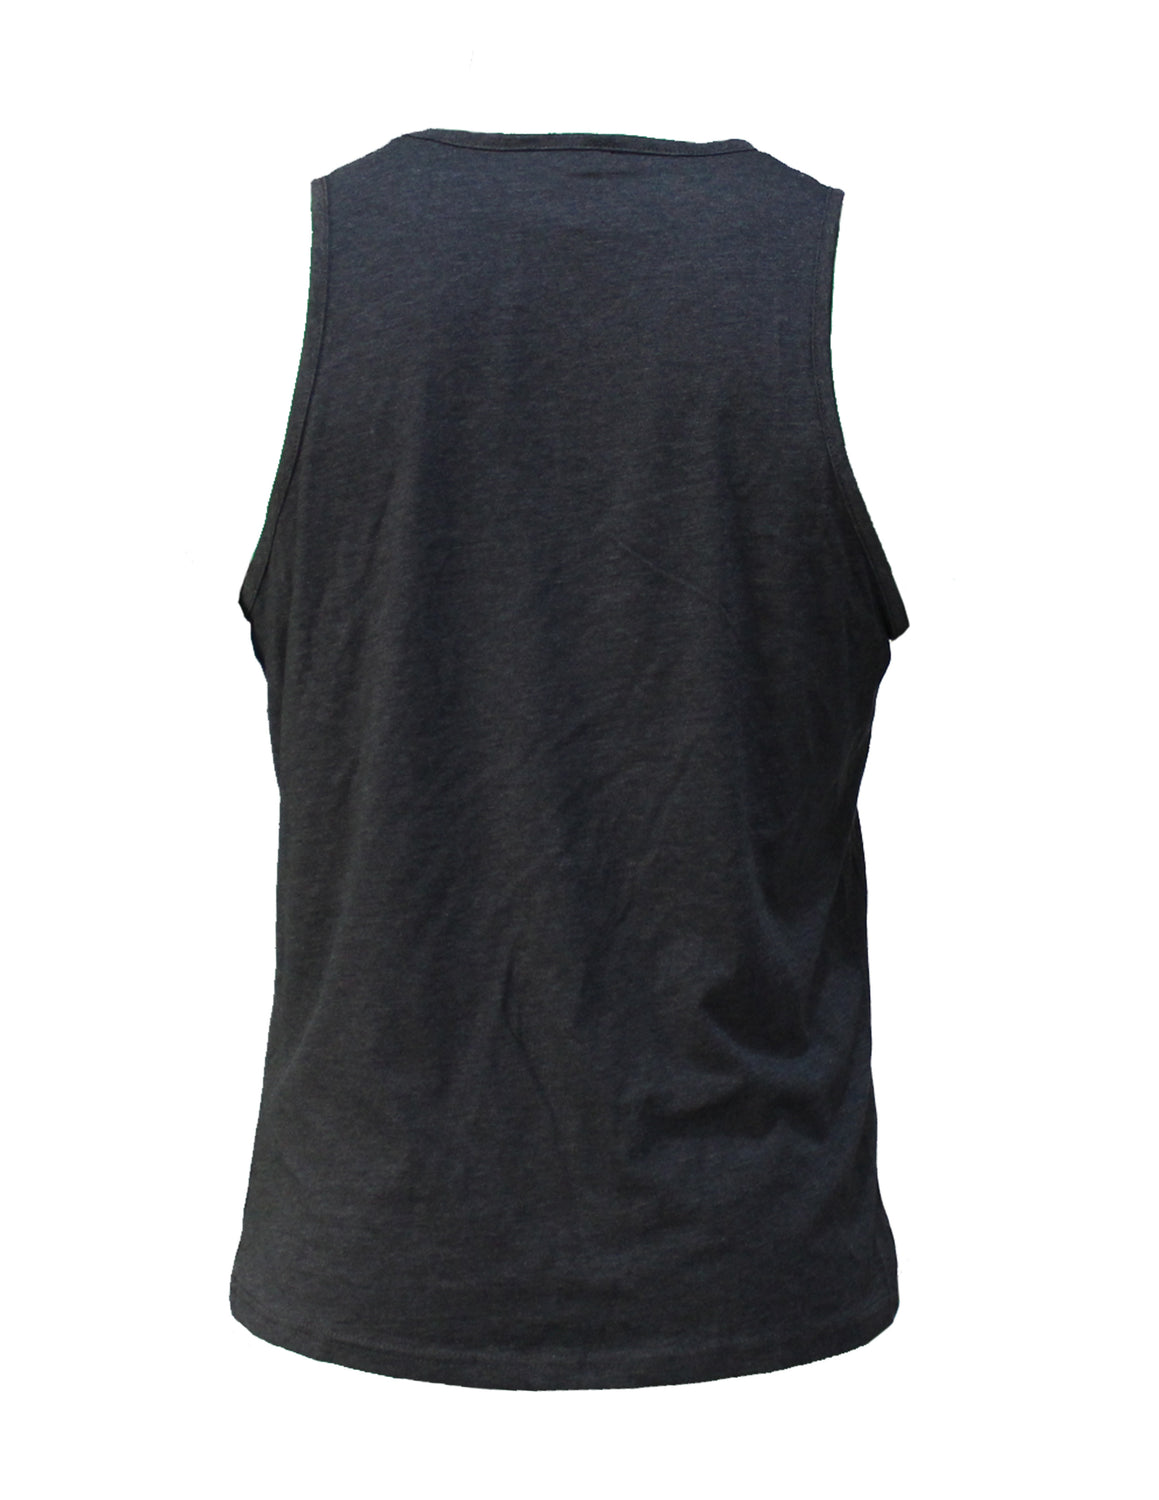 EVENT Men's Classic Tank - Athletic Fit